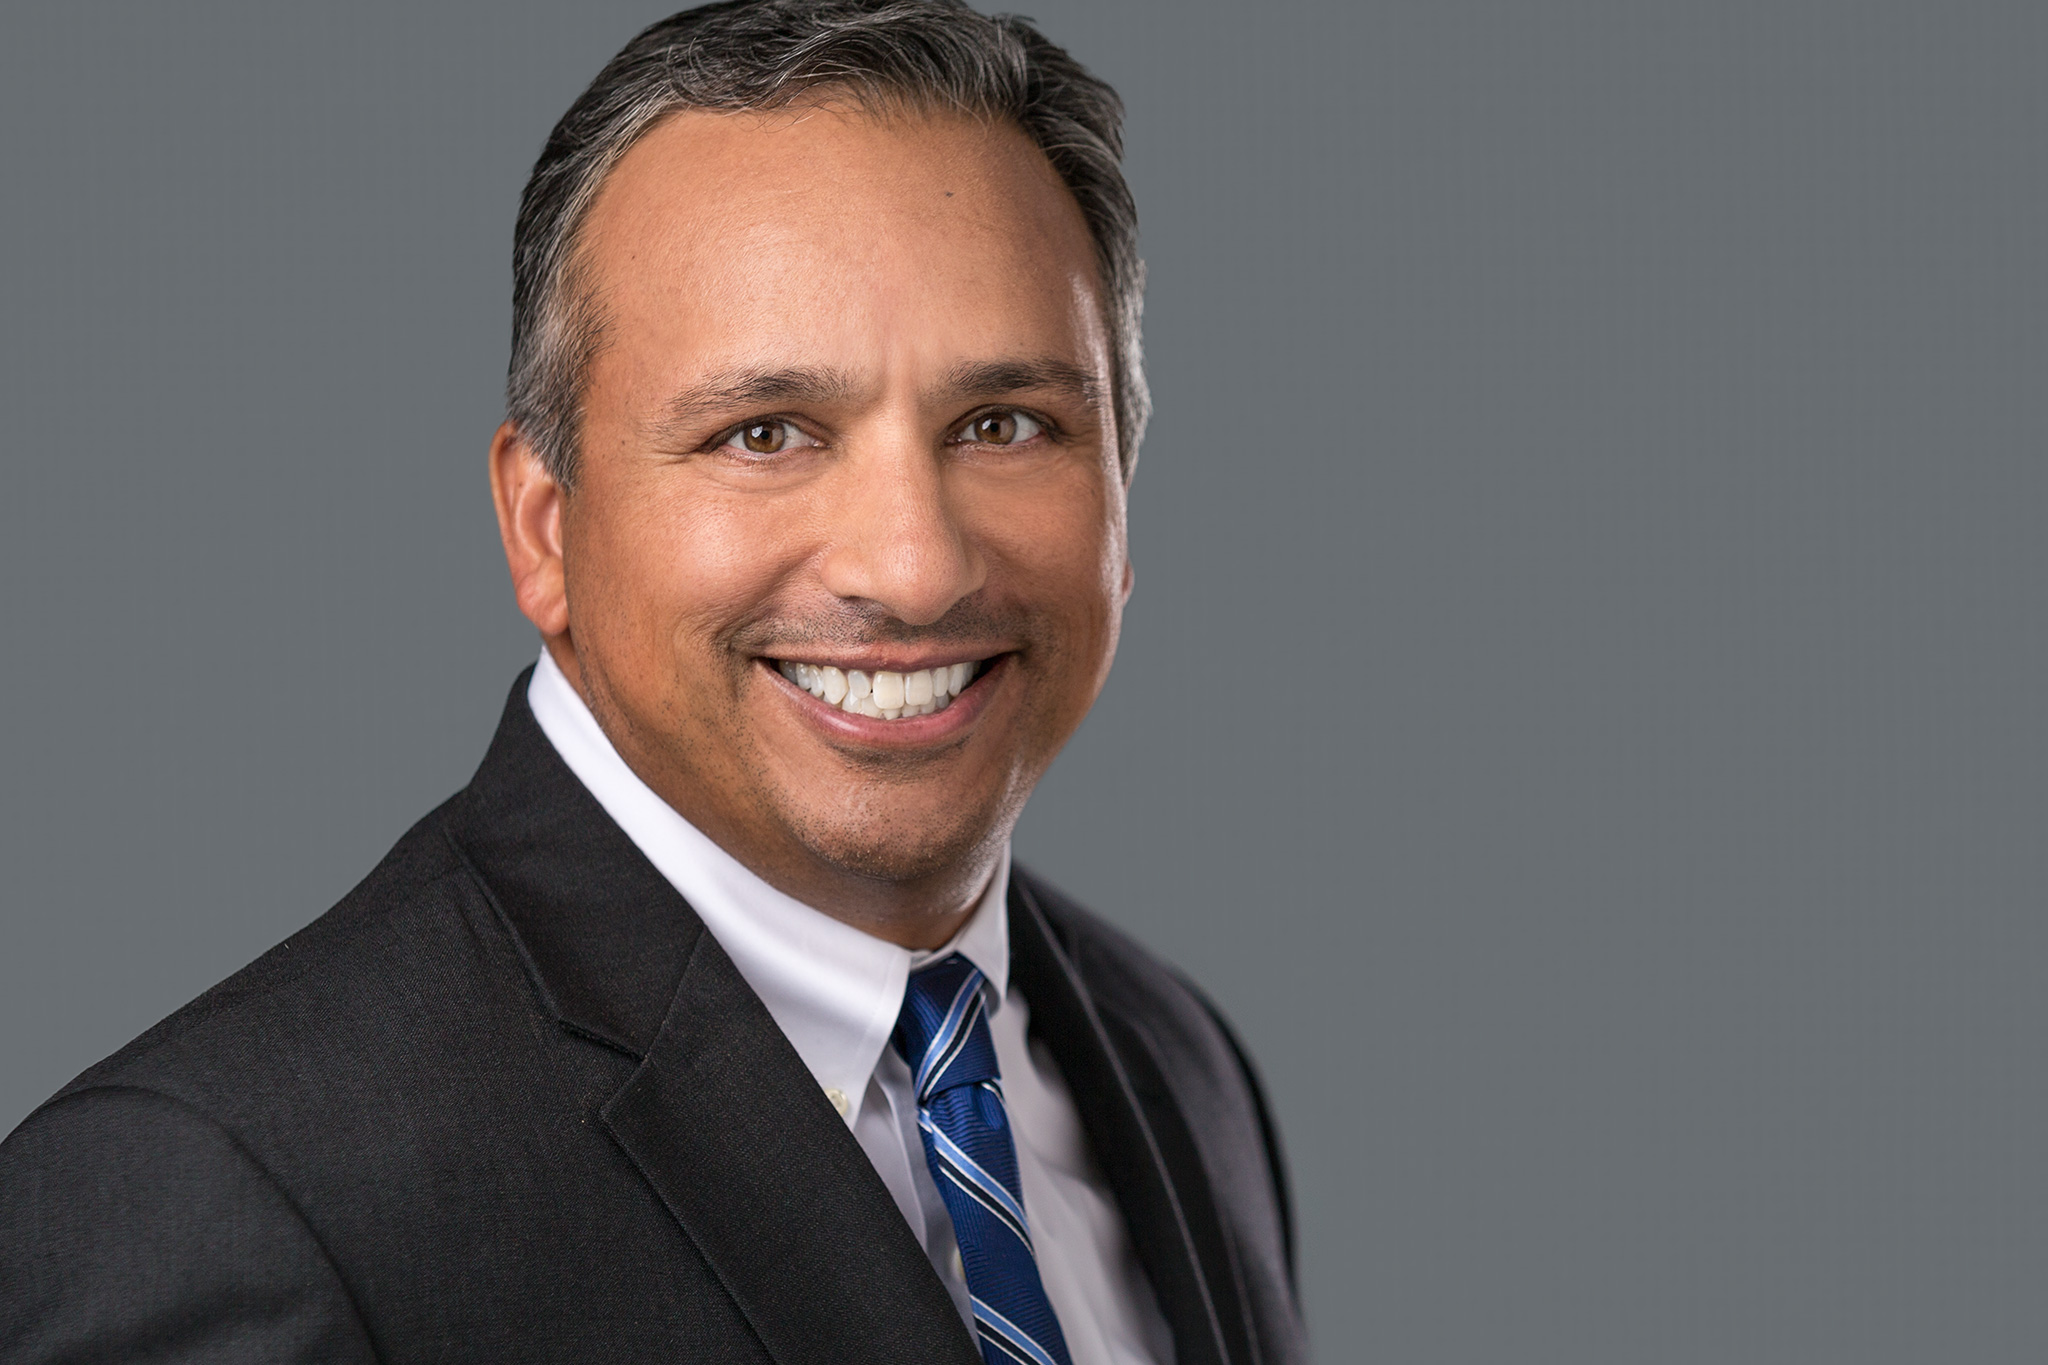 Professional headshot of a middle-aged Indian man smiling.